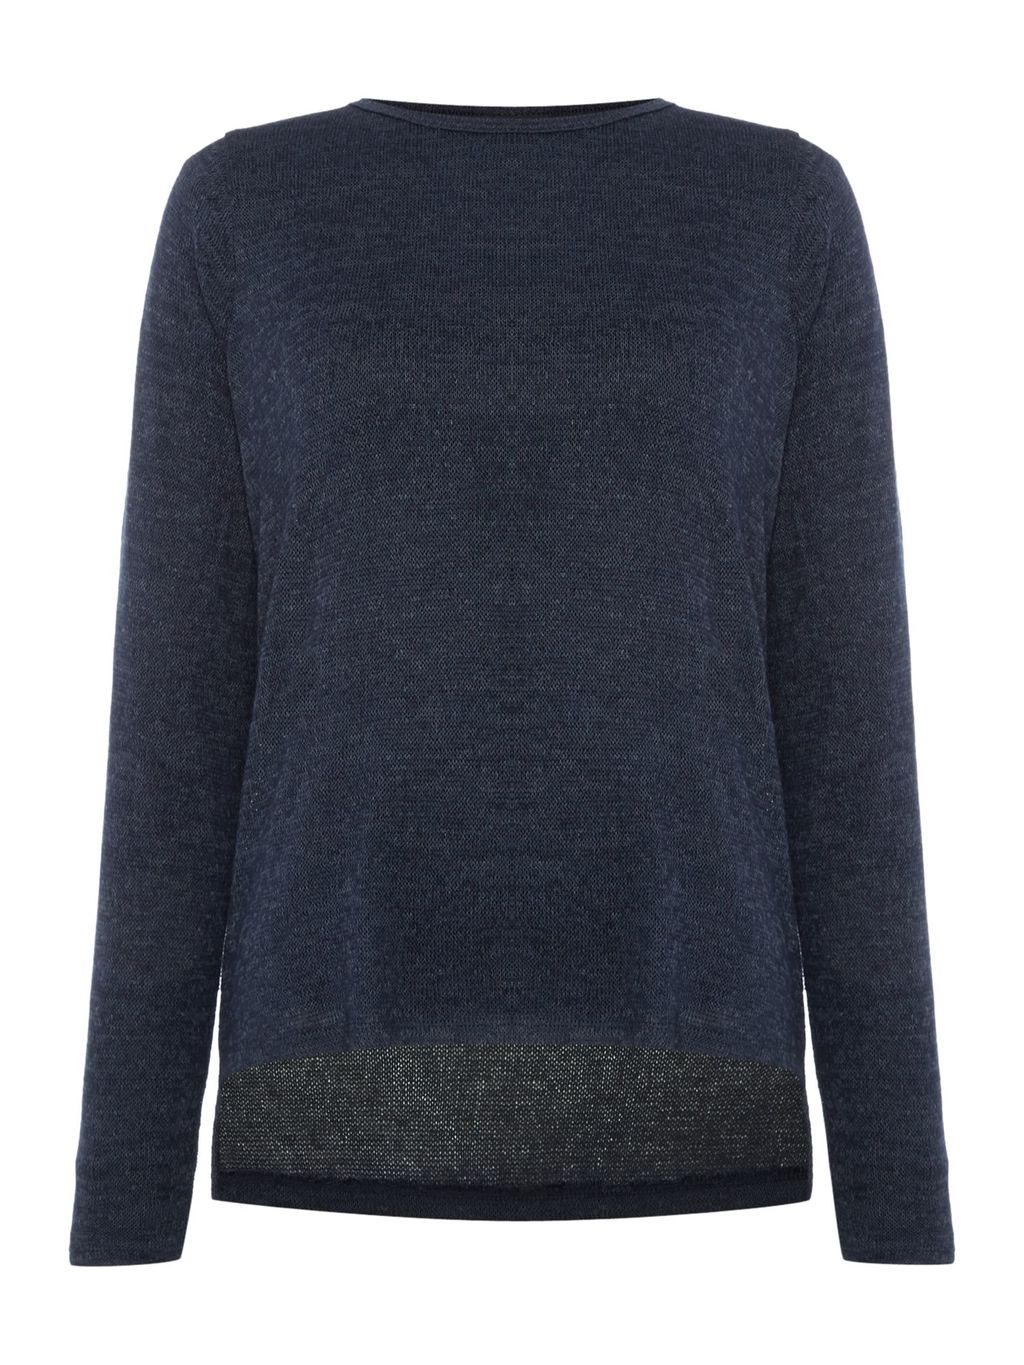 Long Sleeve Lightweight Knitted Jumper, Navy - neckline: round neck; pattern: plain; style: standard; predominant colour: navy; occasions: casual, work, creative work; length: standard; fit: loose; sleeve length: long sleeve; sleeve style: standard; texture group: knits/crochet; pattern type: knitted - fine stitch; fibres: viscose/rayon - mix; season: s/s 2016